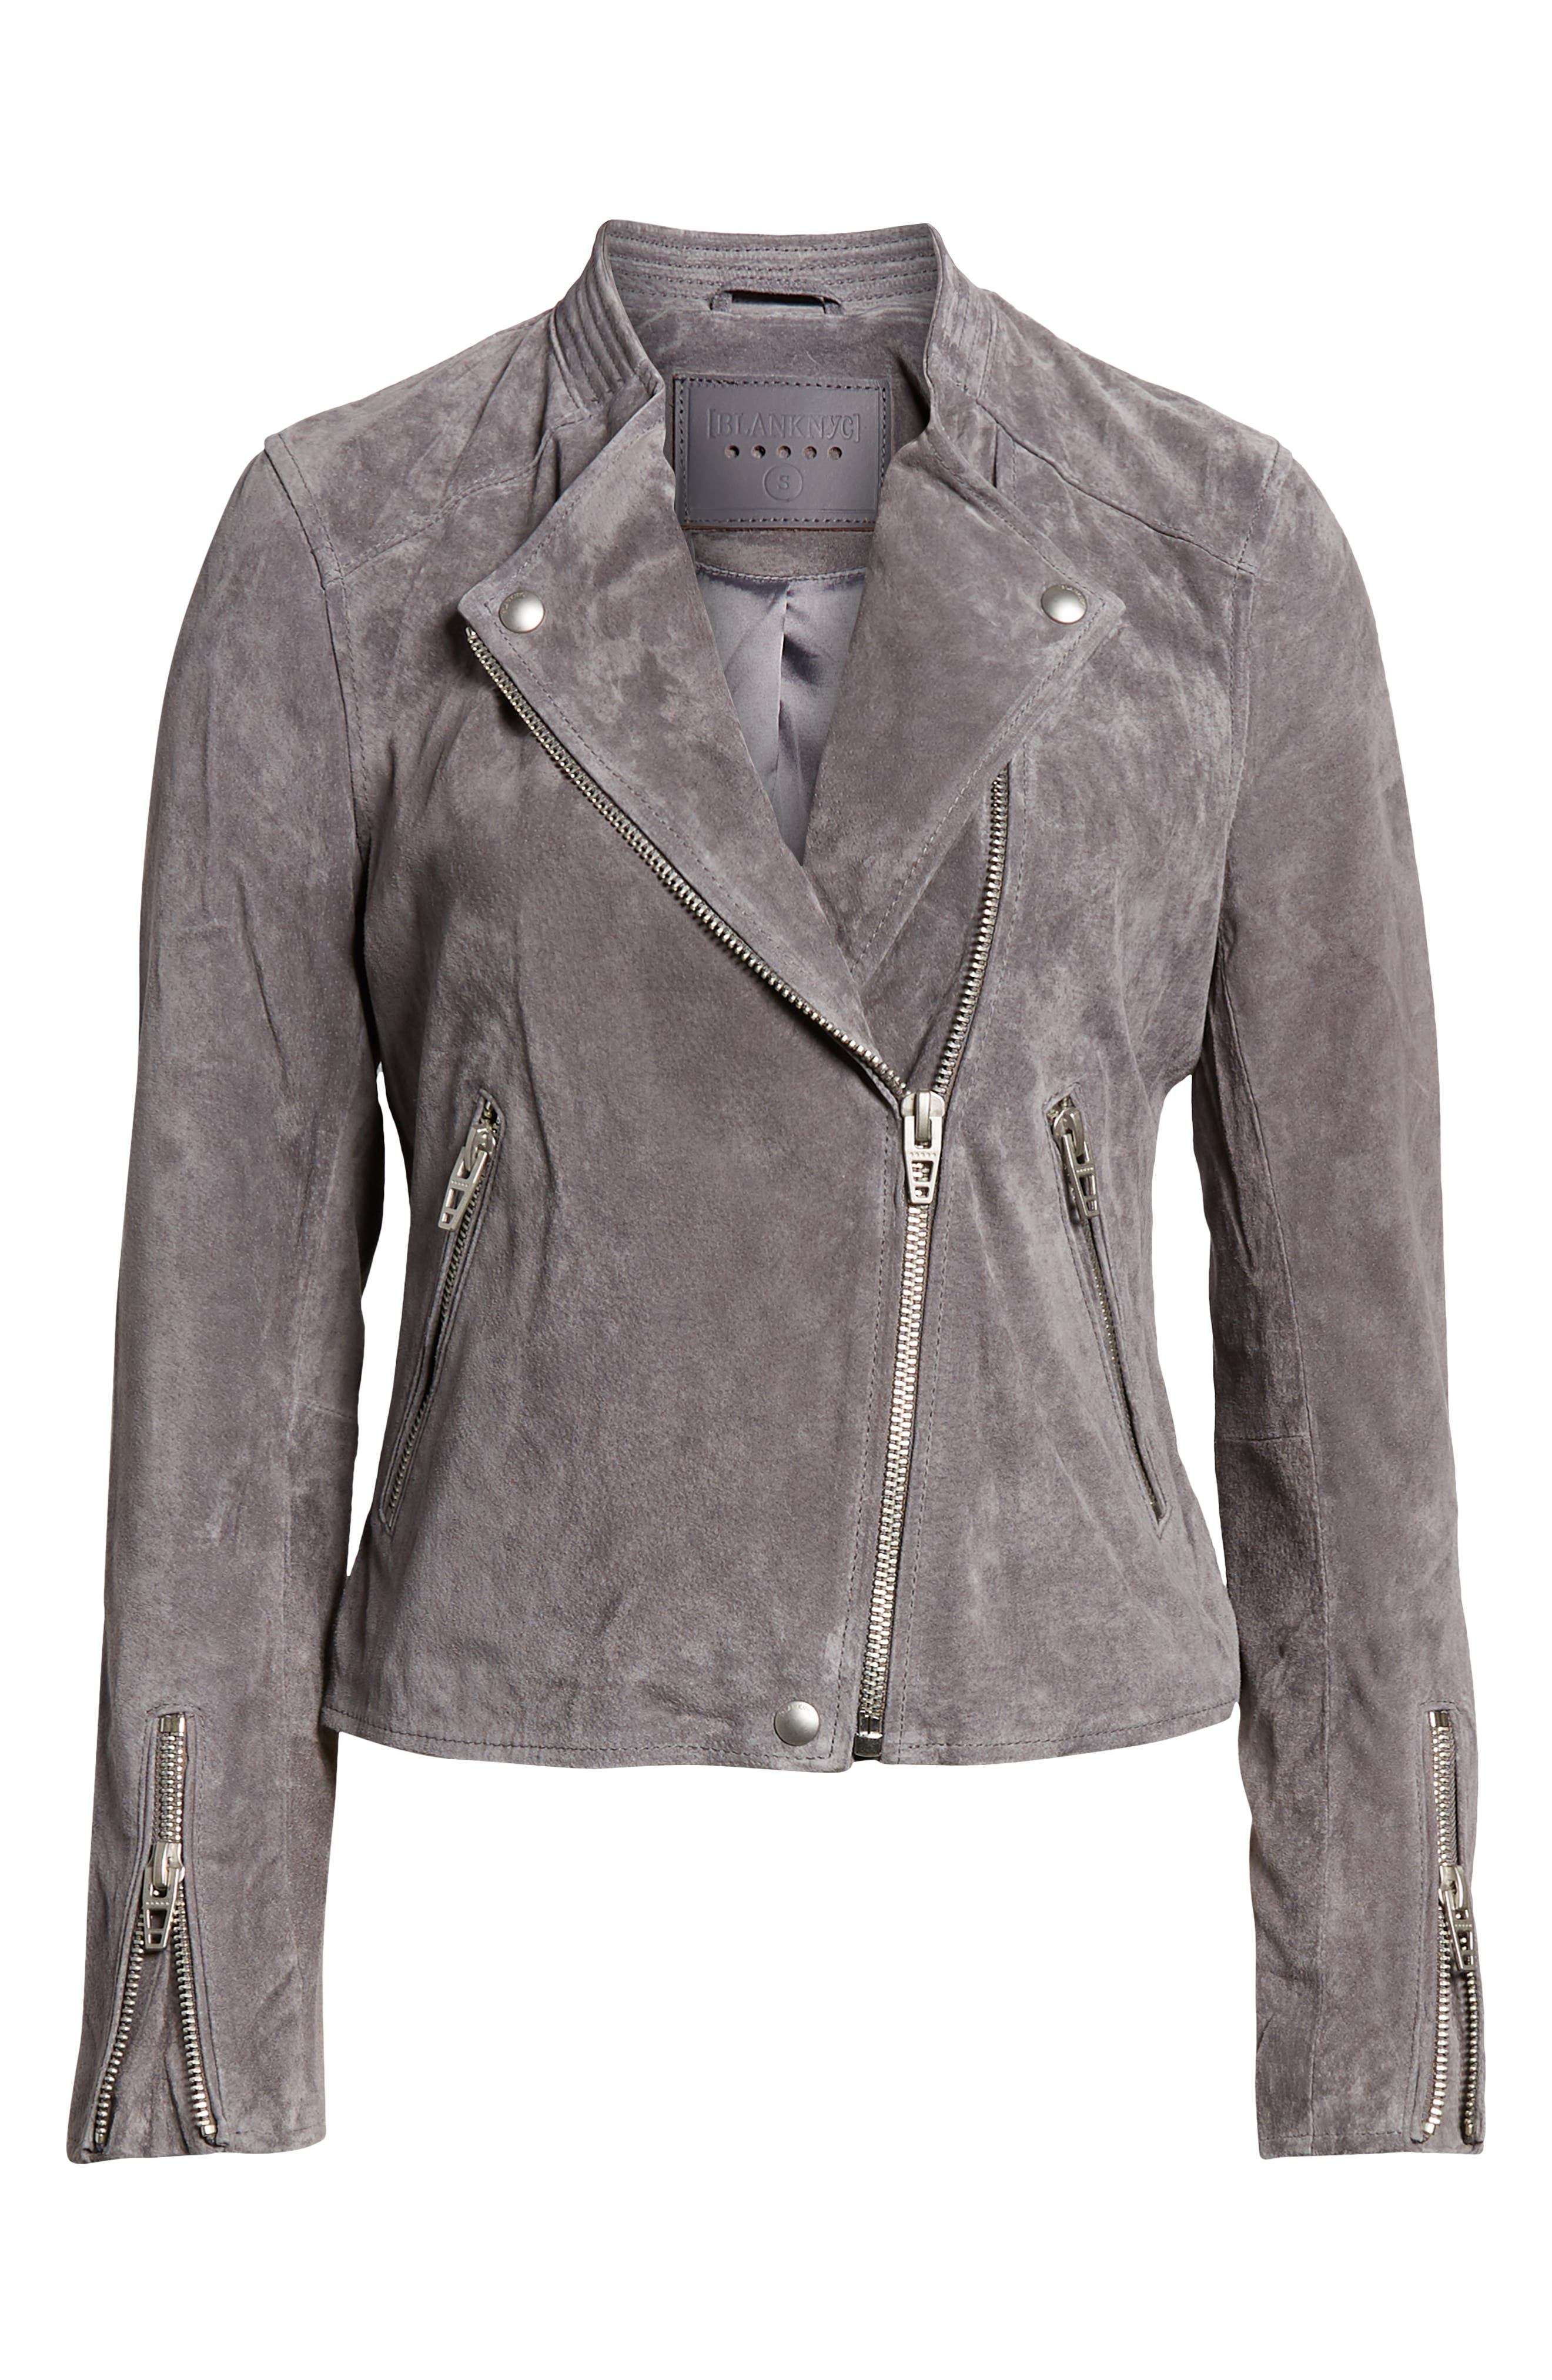 BLANKNYC, No Limit Suede Moto Jacket, Alternate thumbnail 6, color, 020